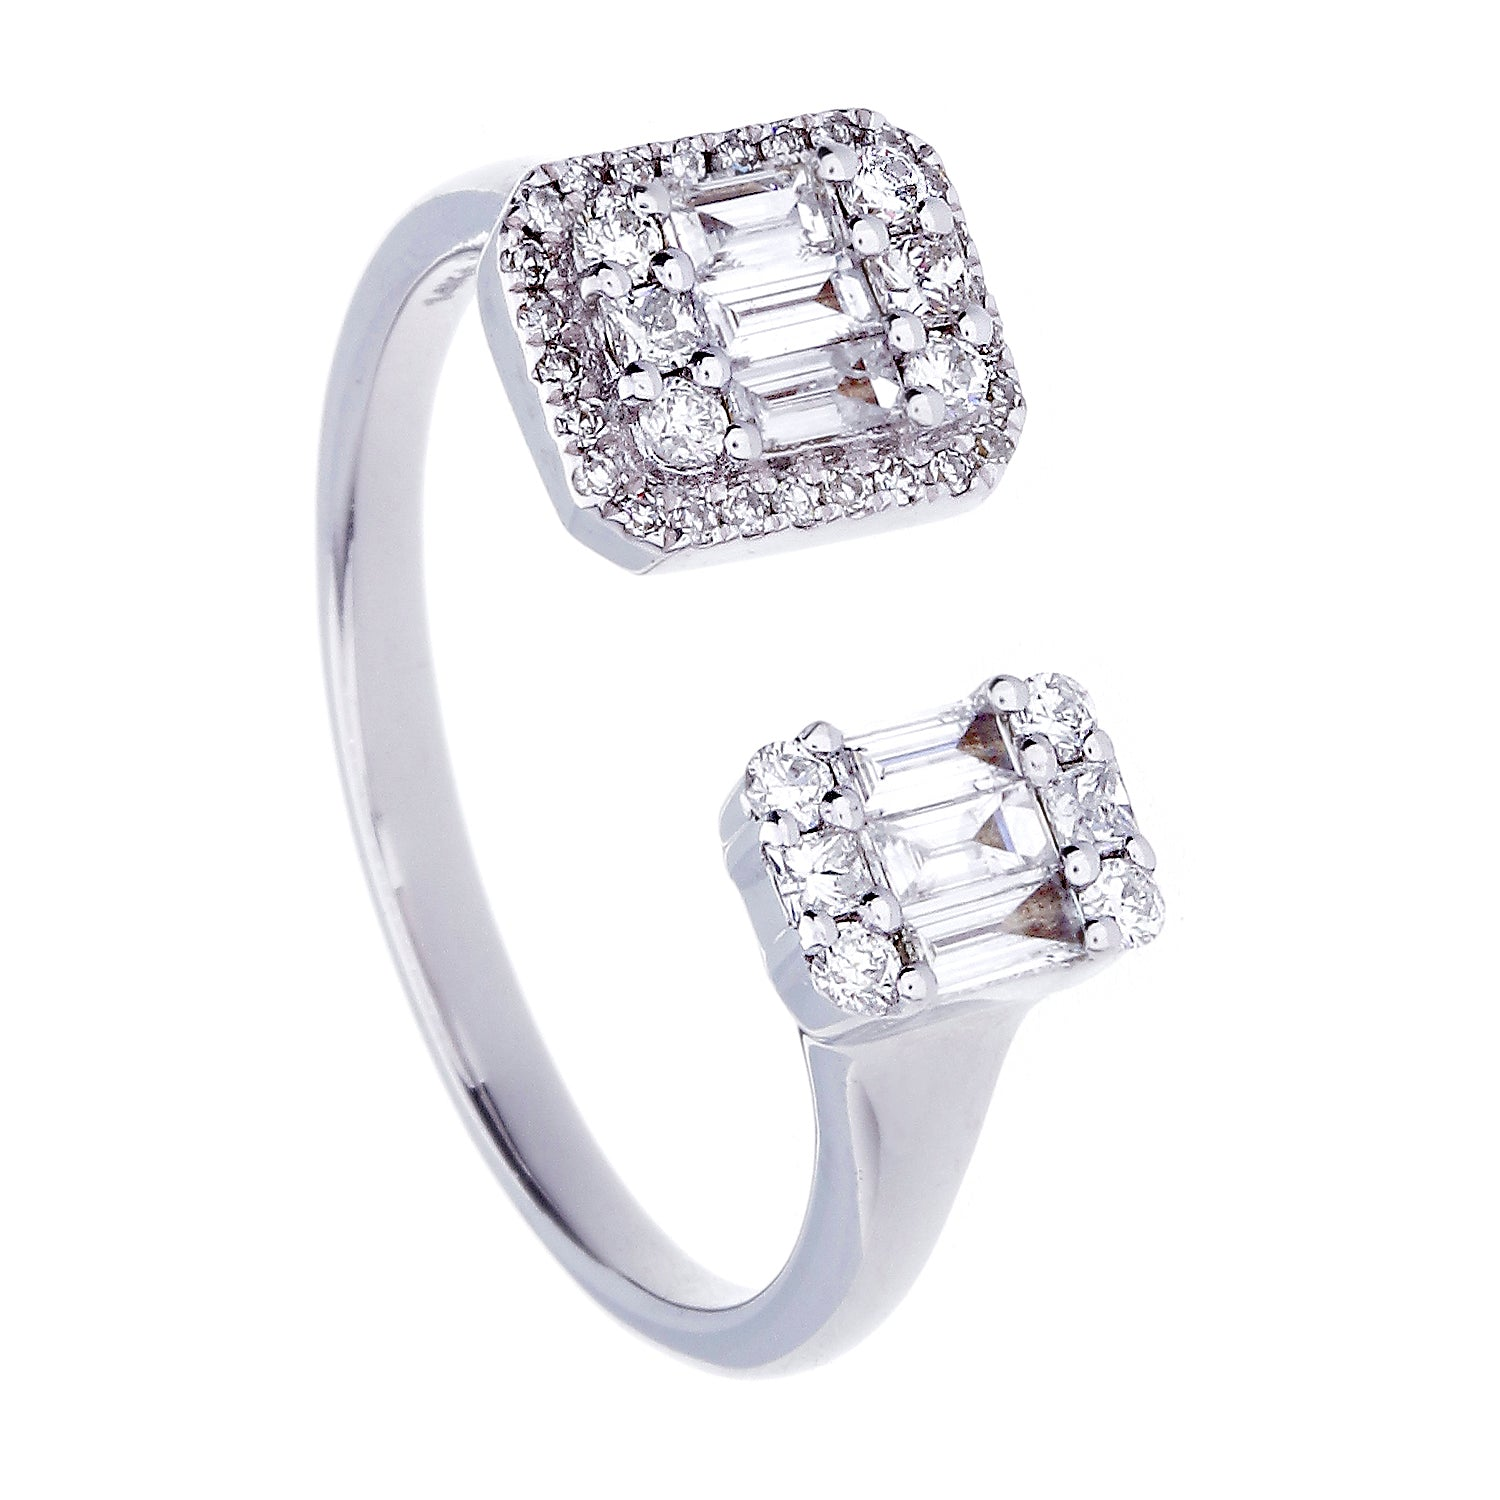 Diamonds & 14K White Gold Open Ring